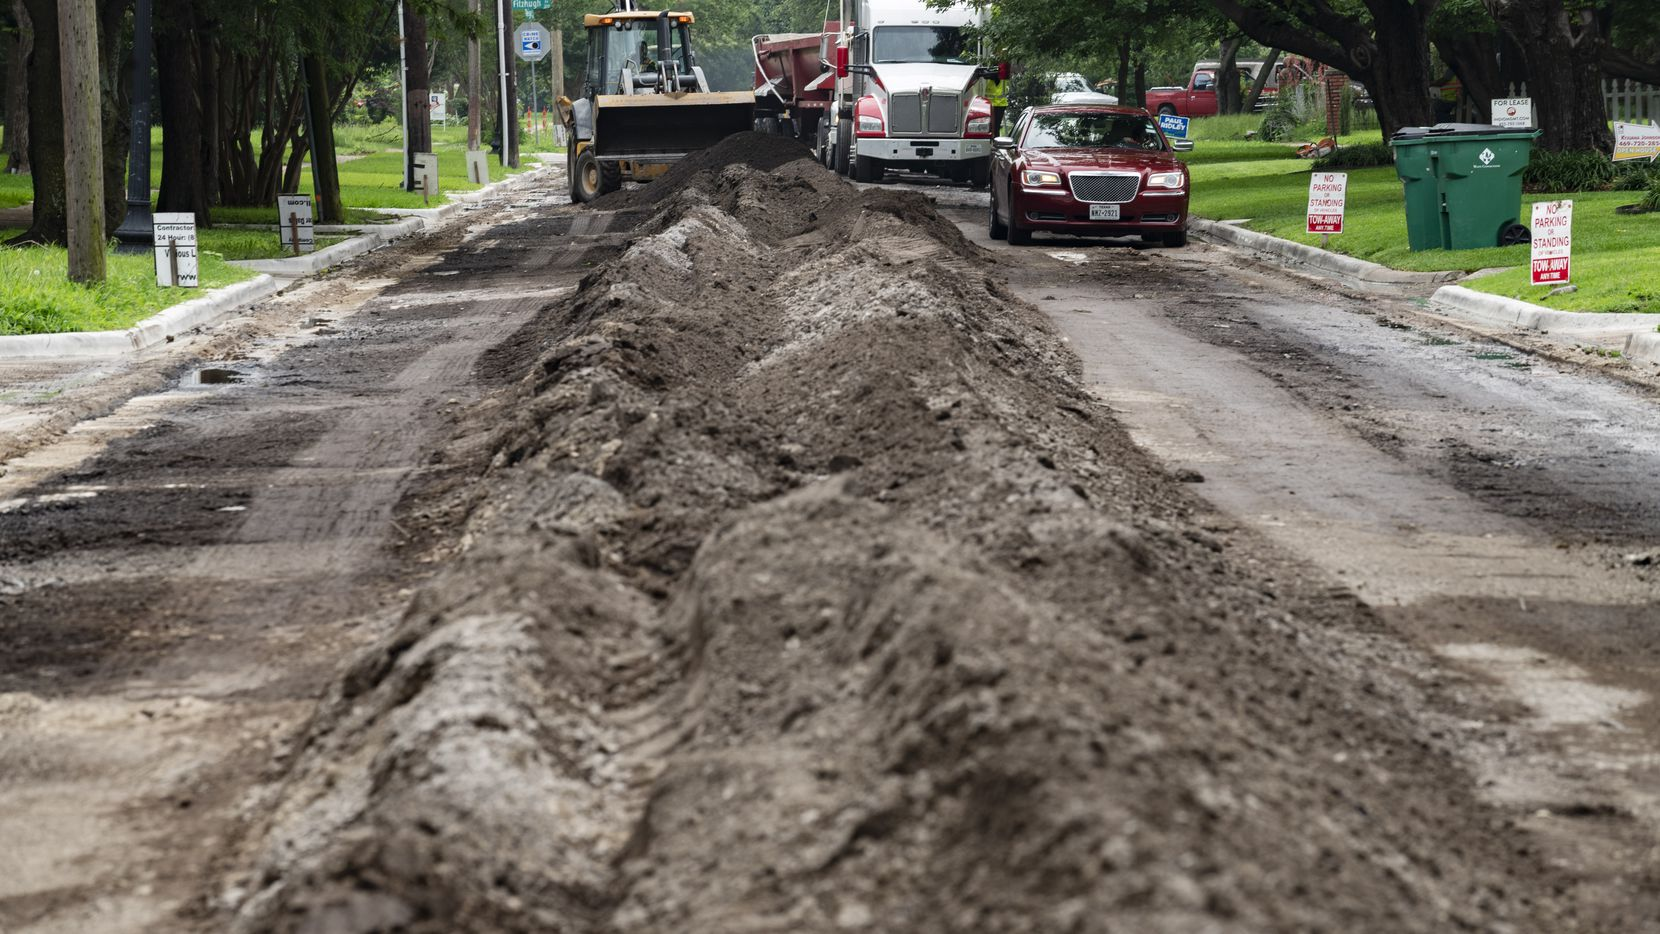 Five residential streets in Arlington will be rebuilt this summer as part of a project to replace streets beyond general maintenance.